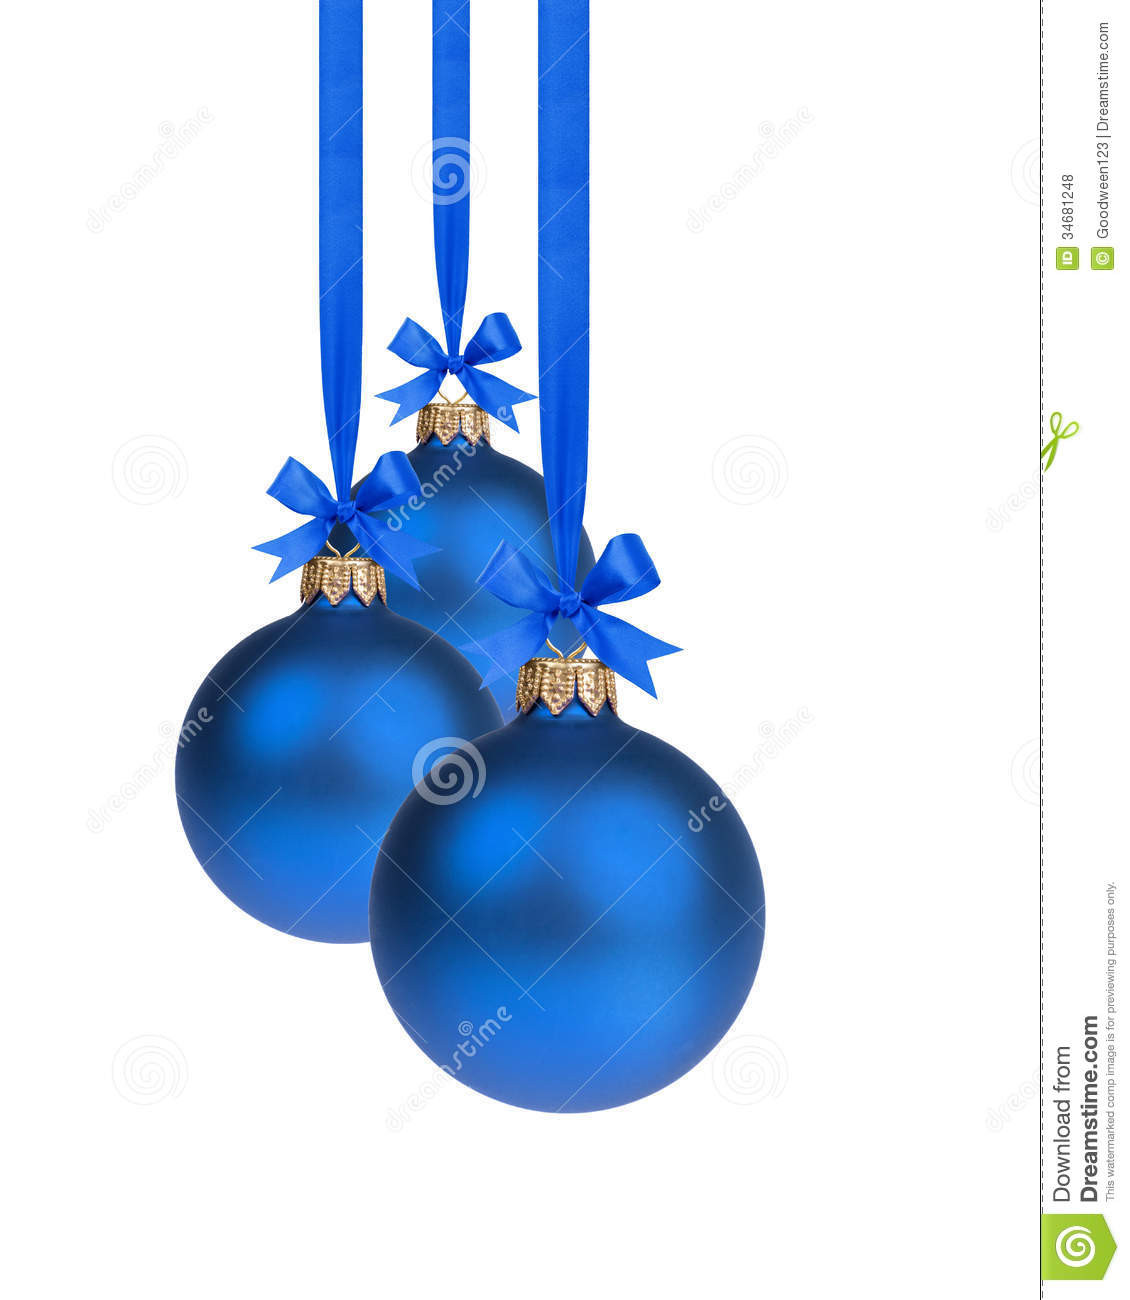 Hanging Christmas ornaments Luxury Blue Christmas Decorations Clipart 37 Of Luxury 45 Pictures Hanging Christmas ornaments